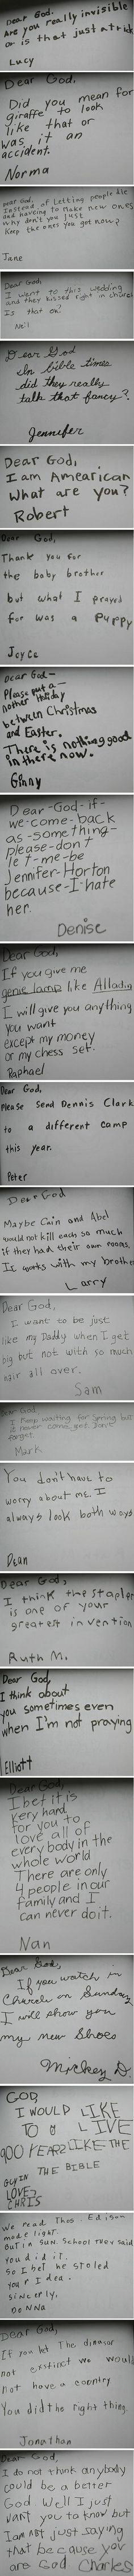 Kids prayers- So precious! Must make my children write down their prayers so we can chuckle at them later